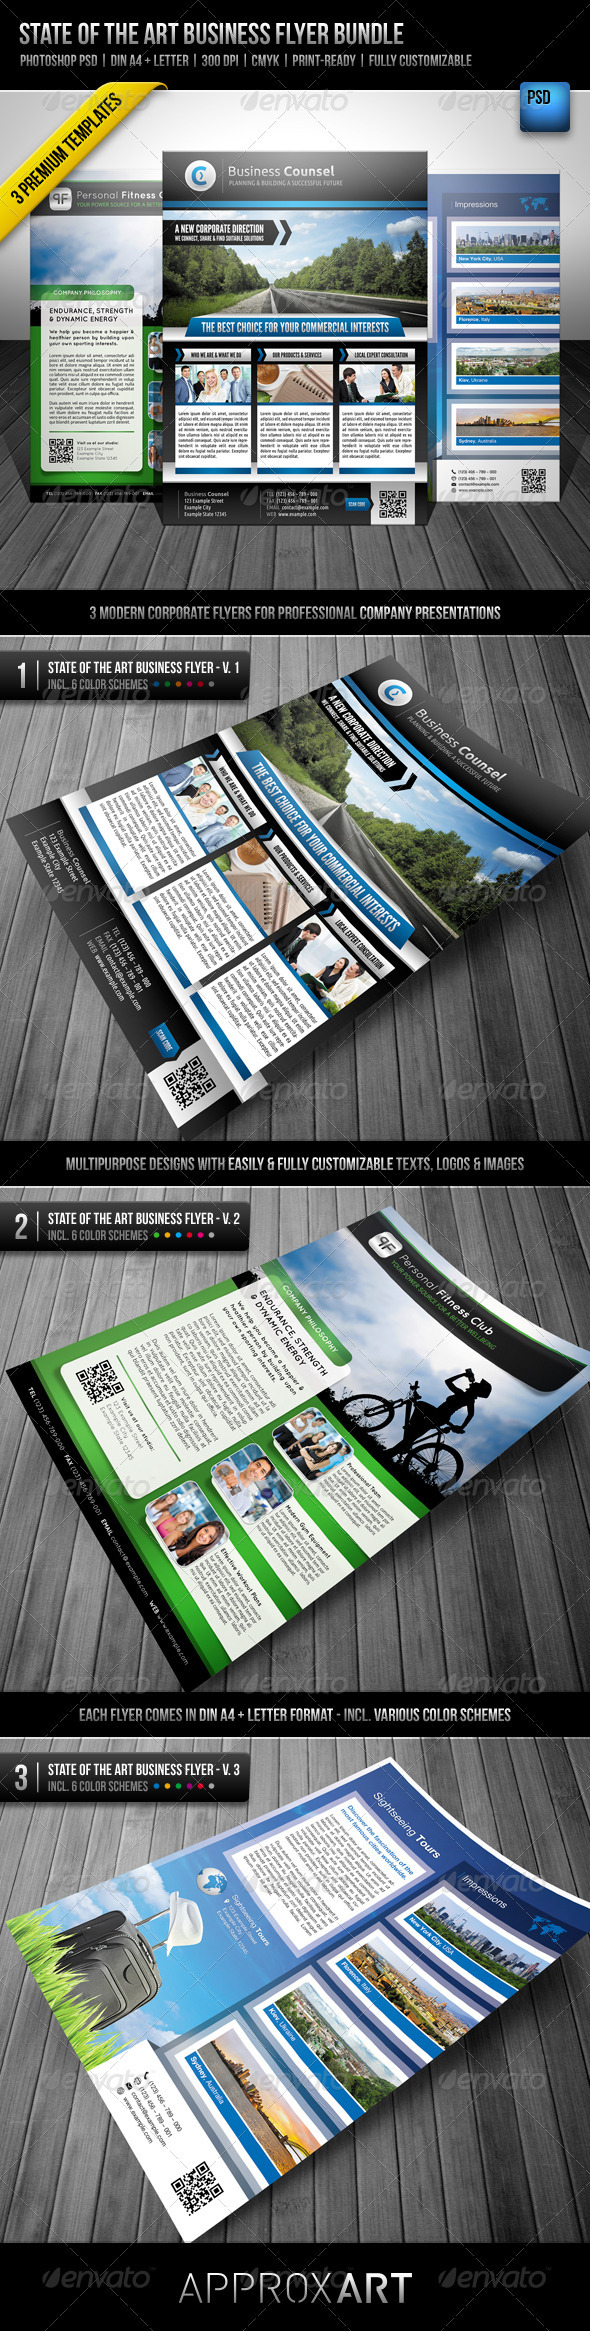 State Of The Art Business Flyer Bundle Print Ad Templates